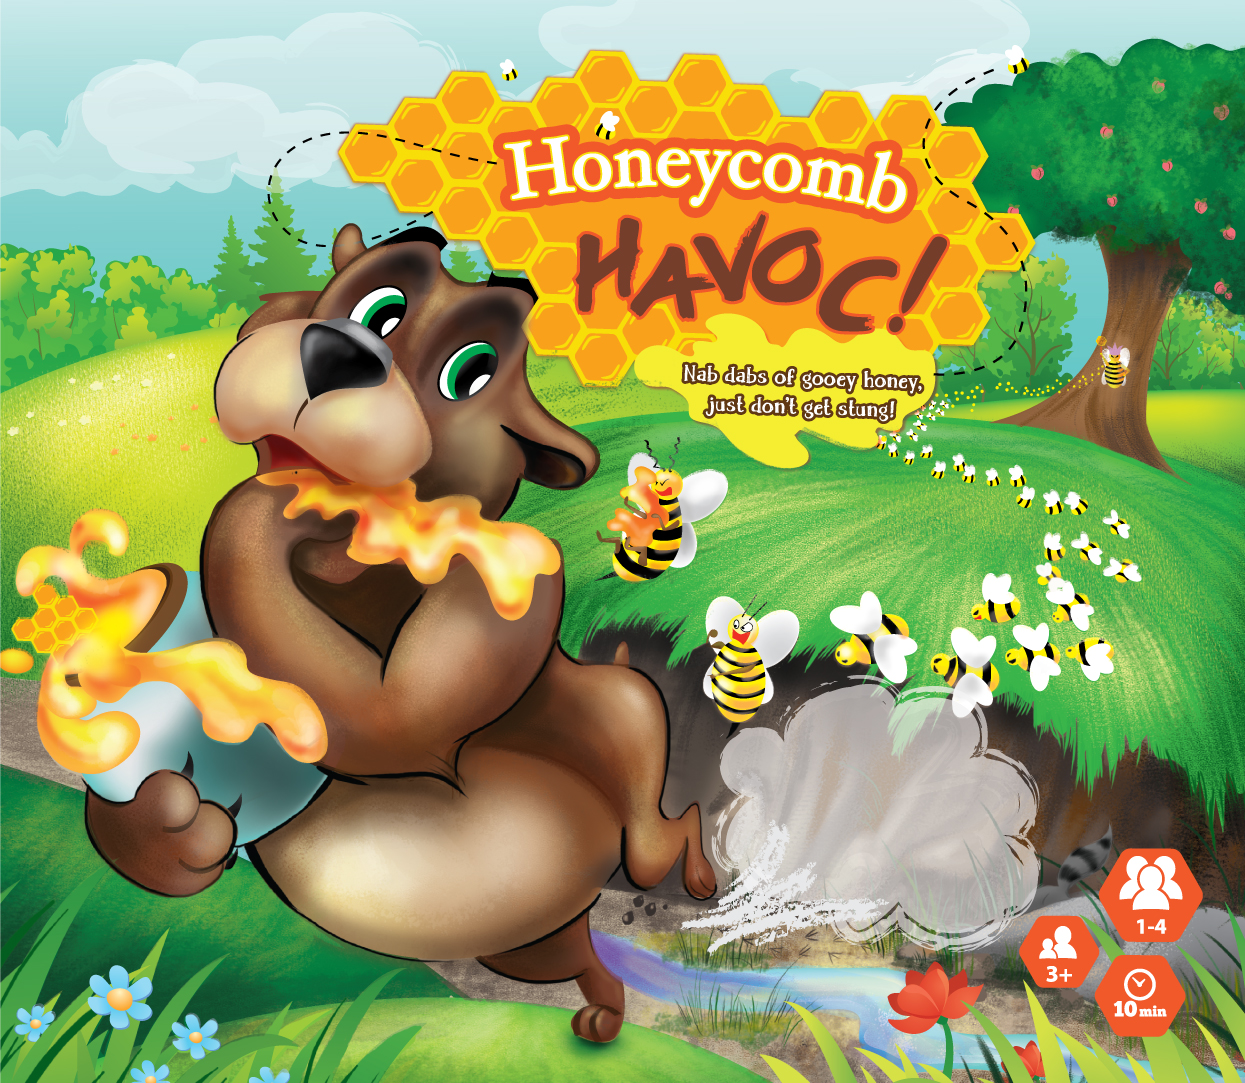 Digital Children's Illustration of a Bear and honeybees